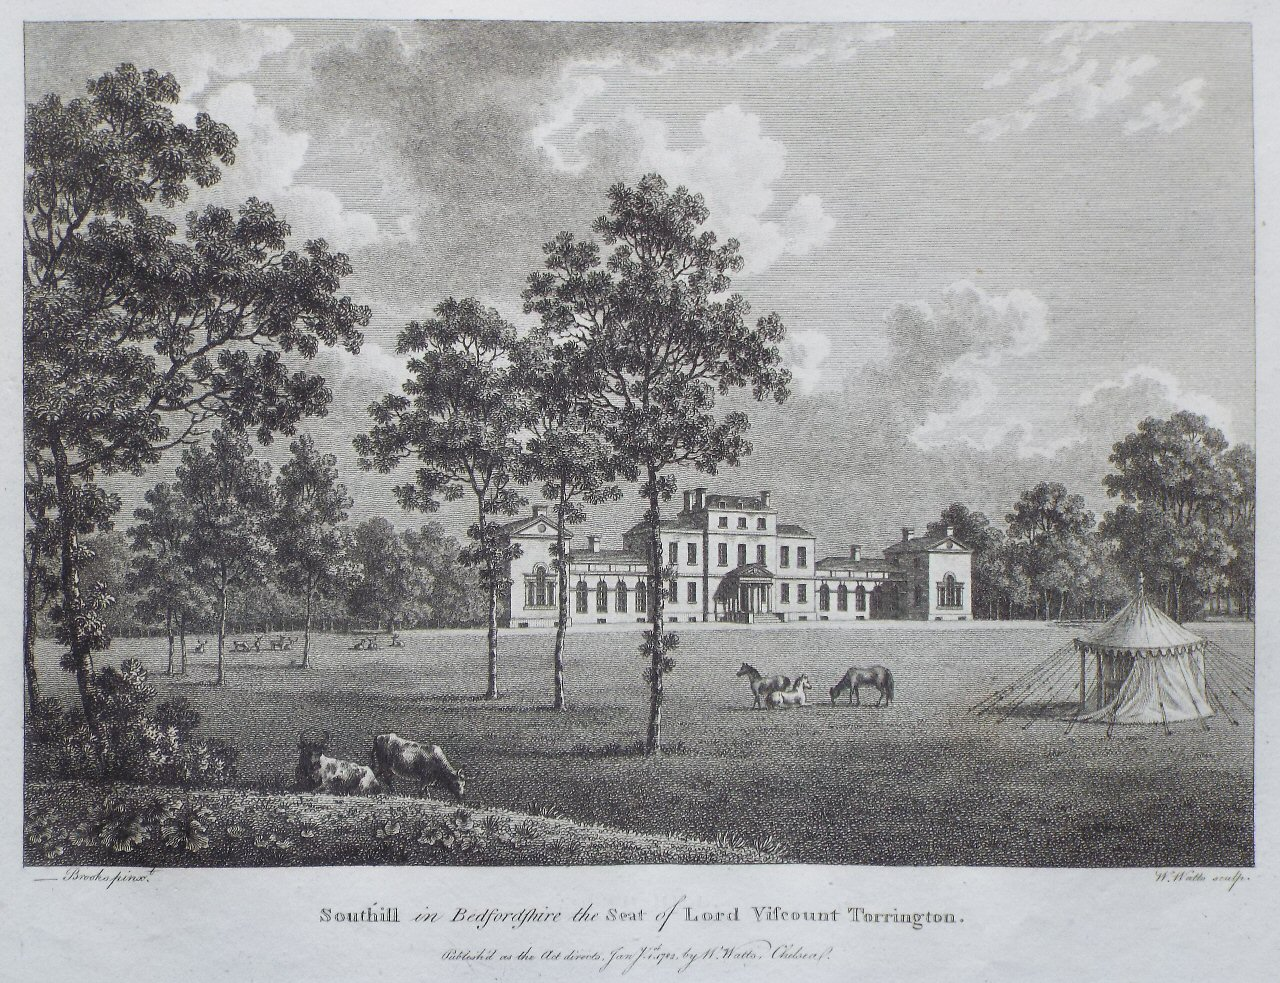 Print - Southill in Bedfordshire, the Seat of Lord Viscount Torrington. - Watts